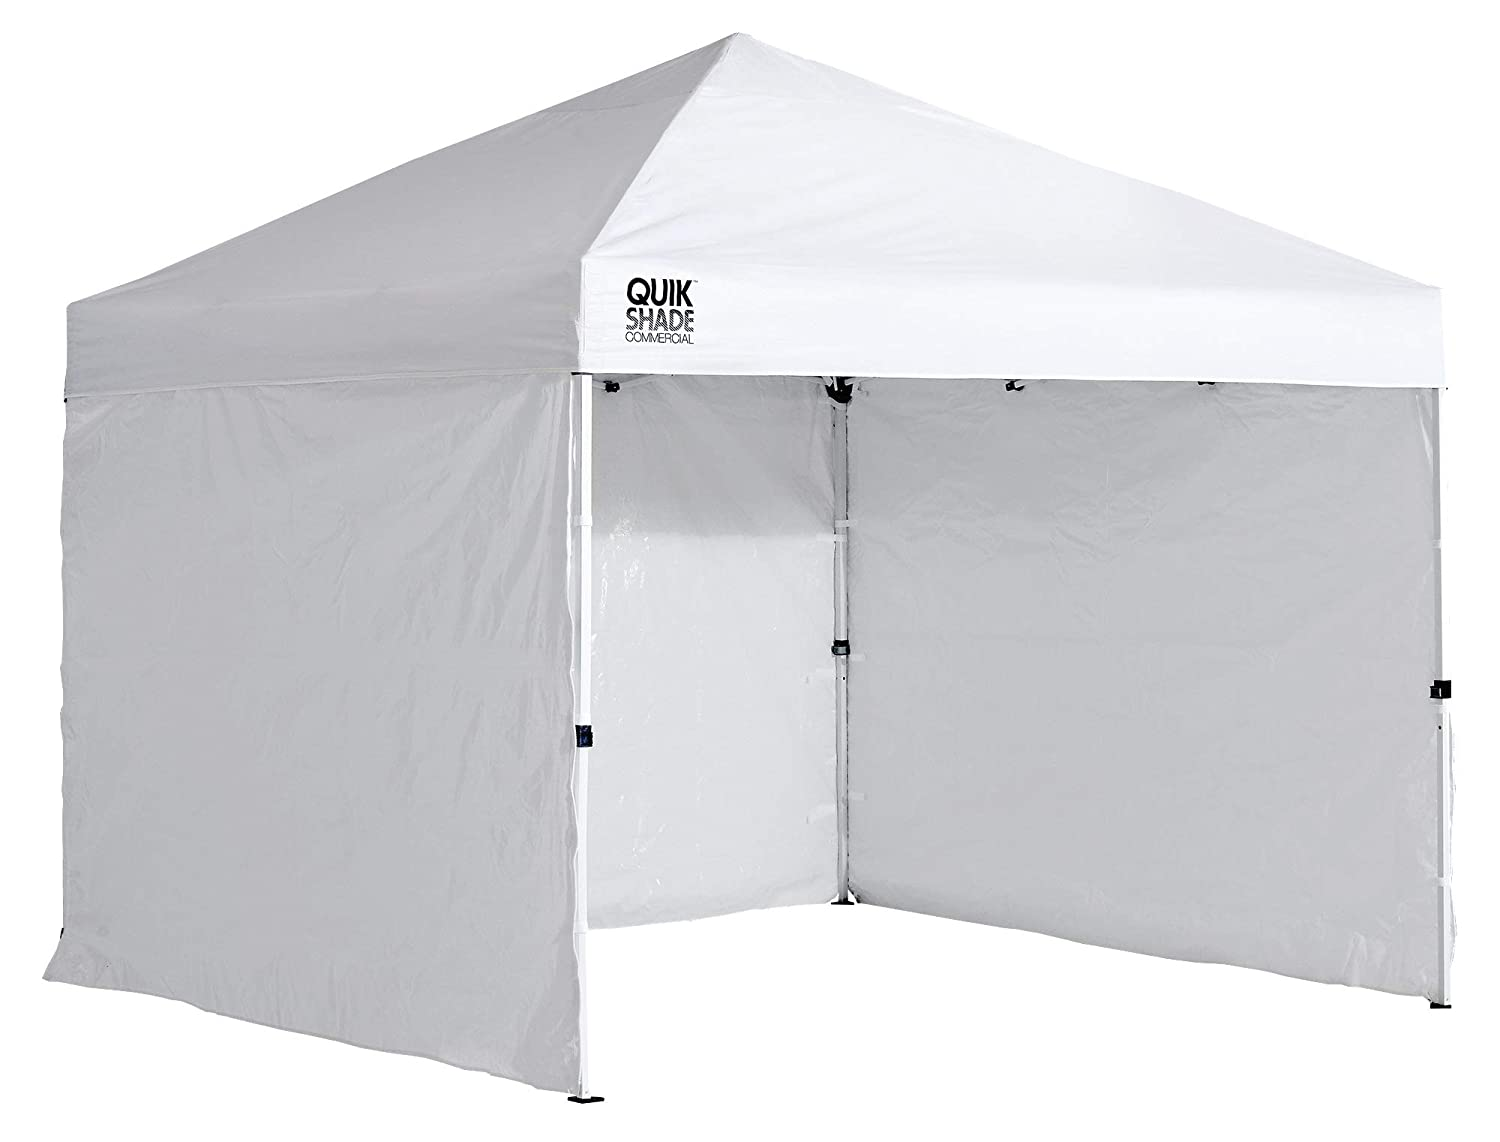 Amazon.com Quik Shade 10u0027 x 10u0027 Instant Canopy Wall Panel Accessory Set for WE100/C100/SX100 Canopies with Zipper Entry Sports u0026 Outdoors  sc 1 st  Amazon.com & Amazon.com: Quik Shade 10u0027 x 10u0027 Instant Canopy Wall Panel Accessory ...